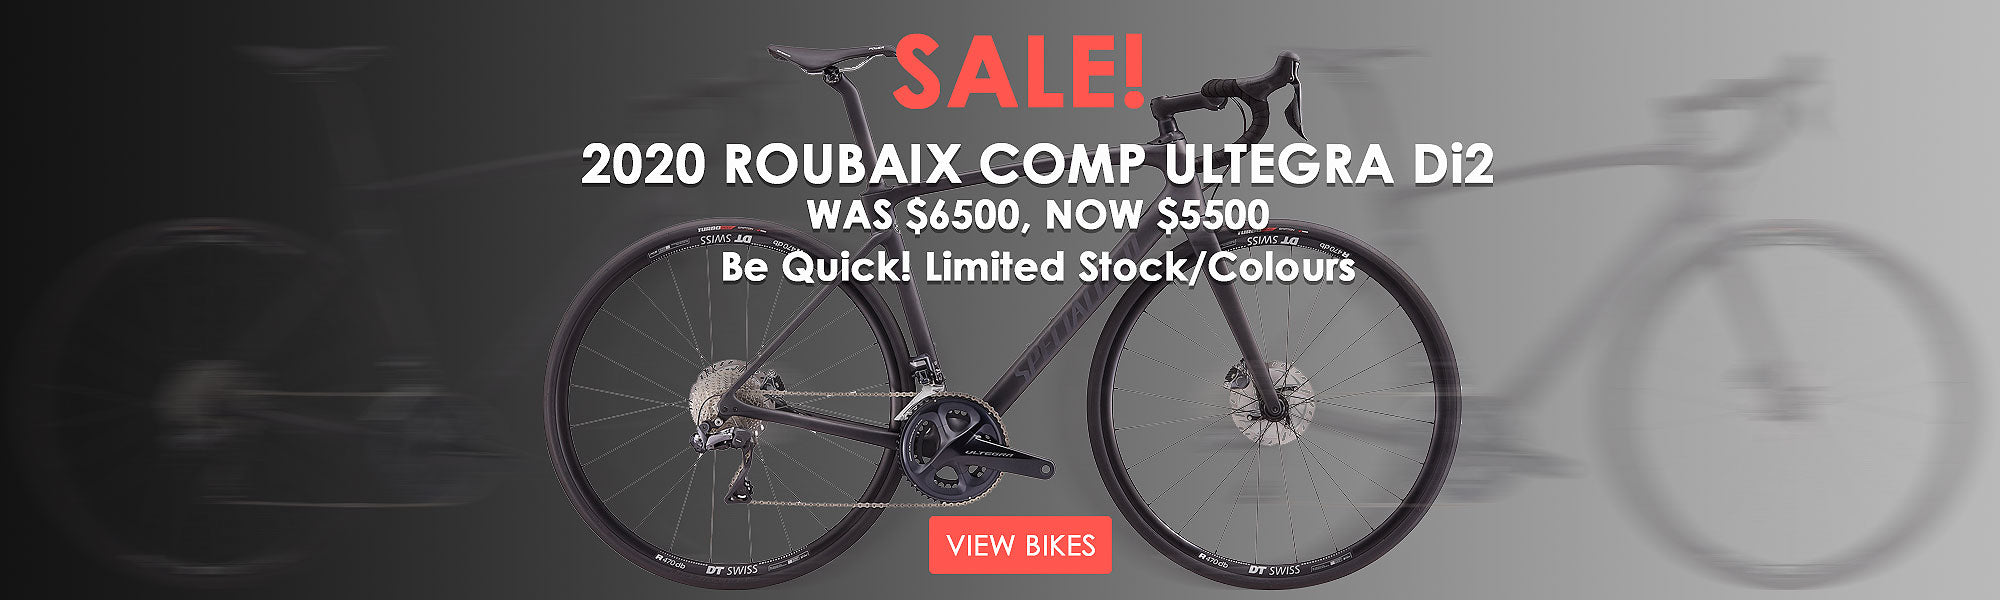 Specialized 2020 Roubaix Comp Ultegra Di2 Sale - Save $1000!